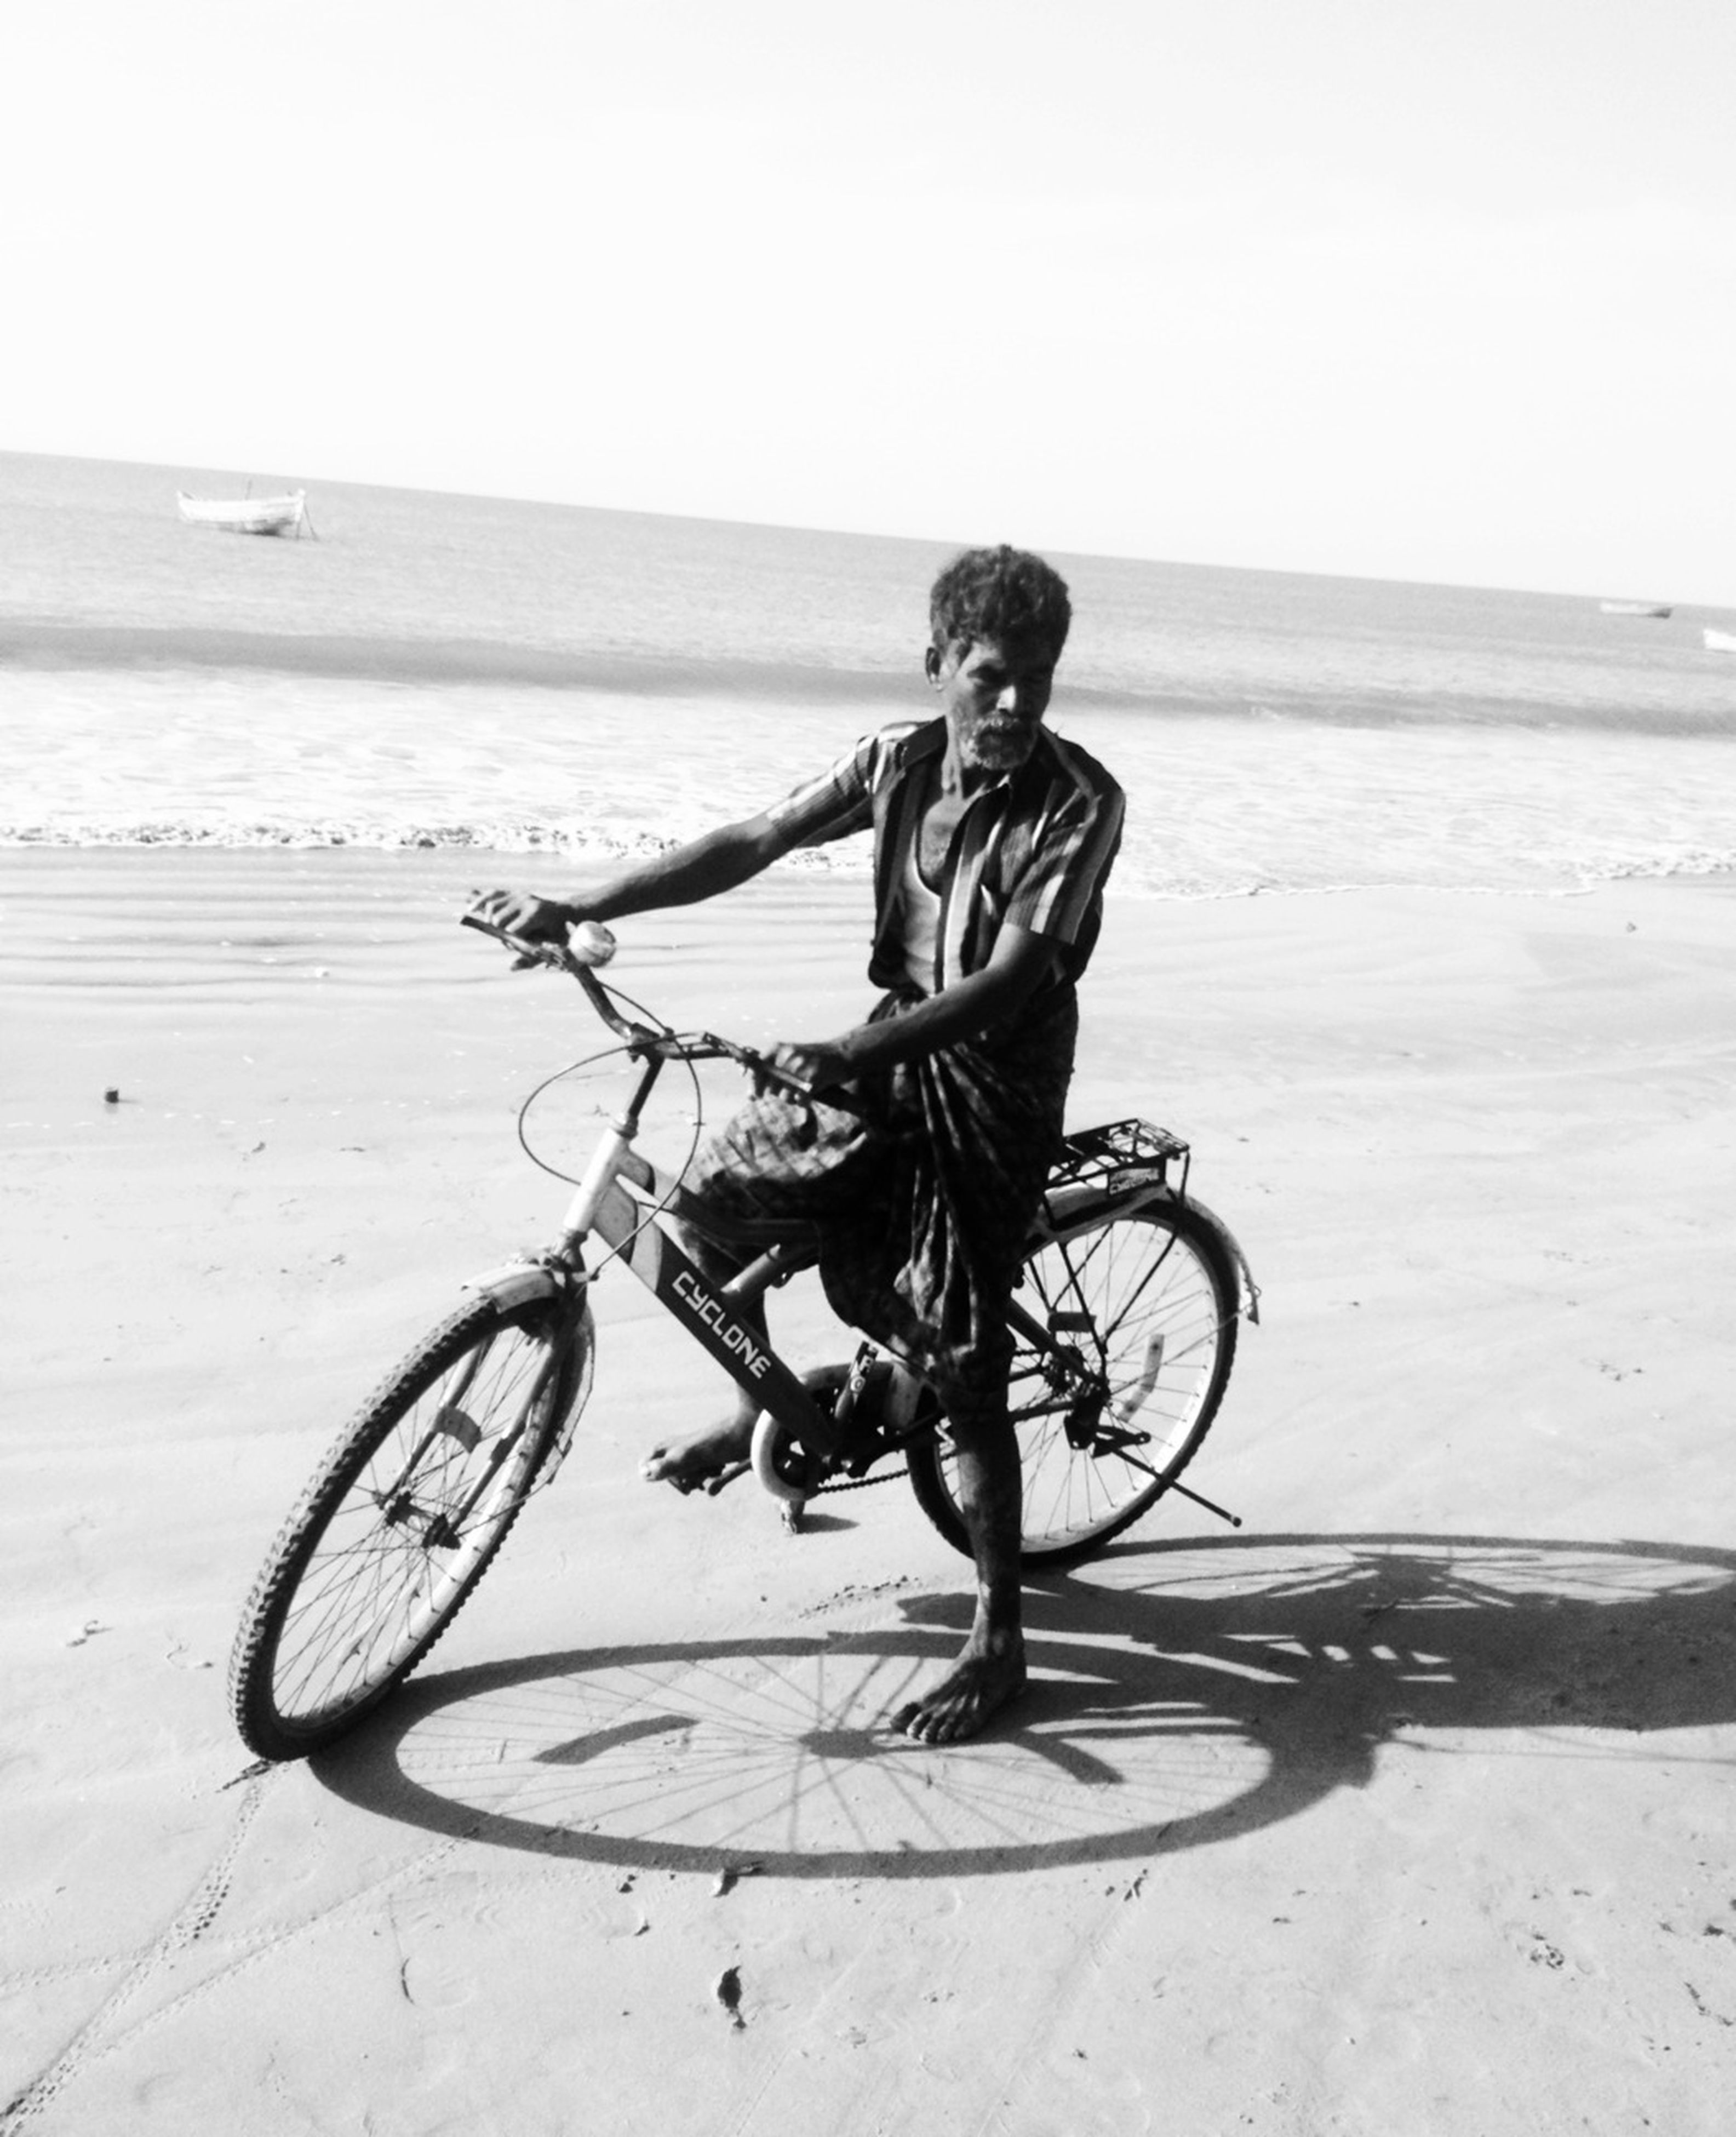 bicycle, mode of transport, transportation, full length, land vehicle, beach, leisure activity, riding, side view, sand, lifestyles, stationary, childhood, casual clothing, day, parking, shore, sea